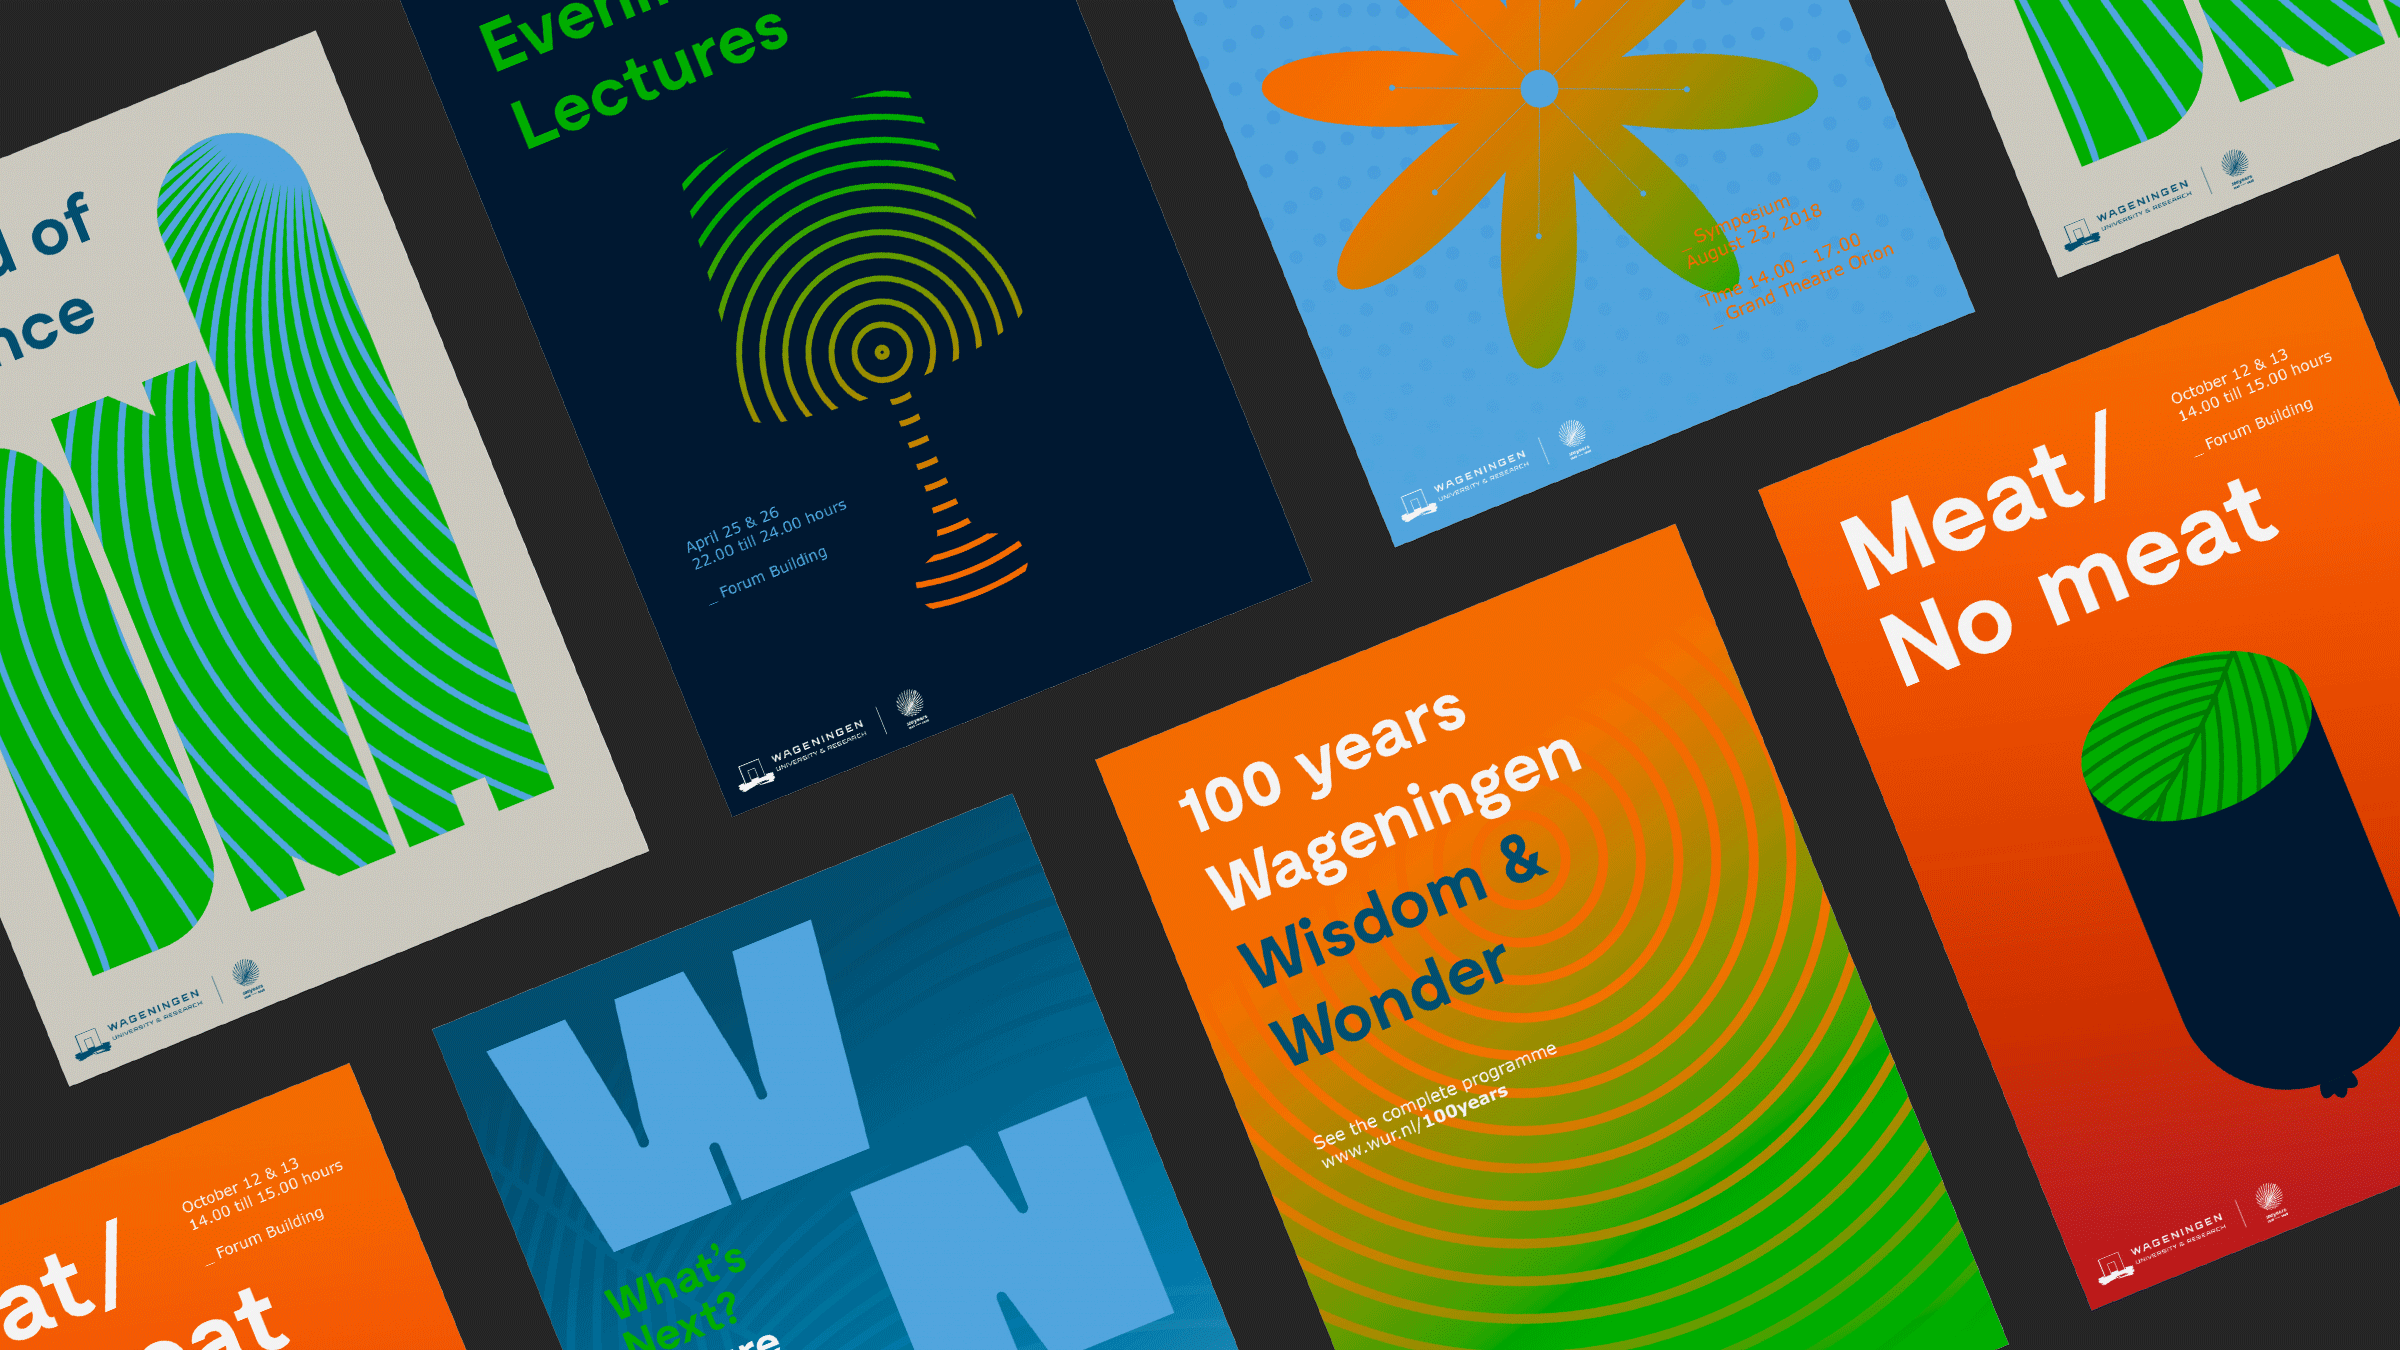 Wageningen University & Research poster design